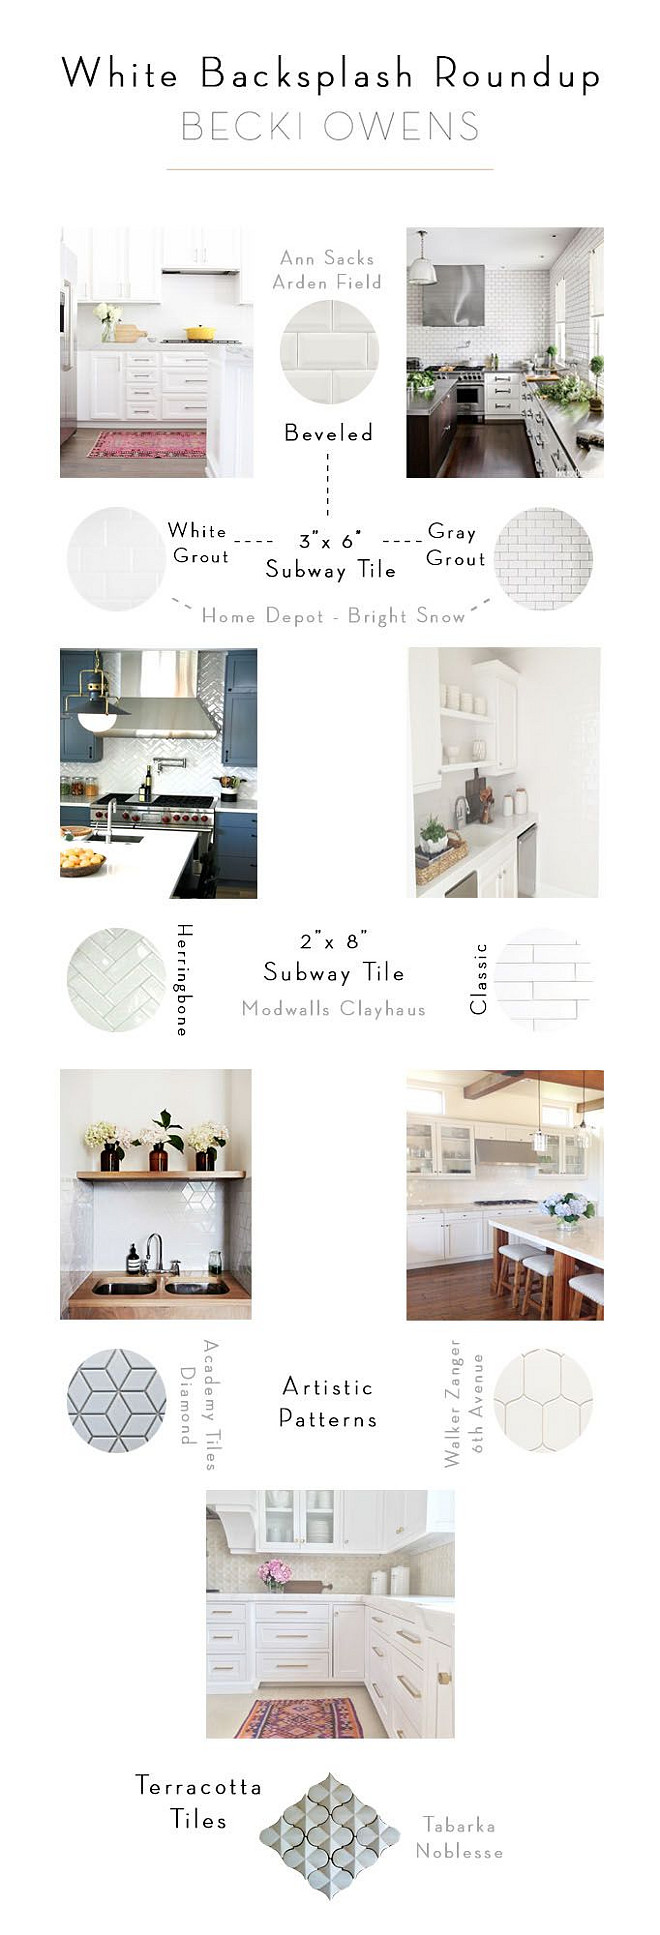 White Backplash Tile Roundup. White backsplash Guide. Interior Design Tips. Becki Owens.